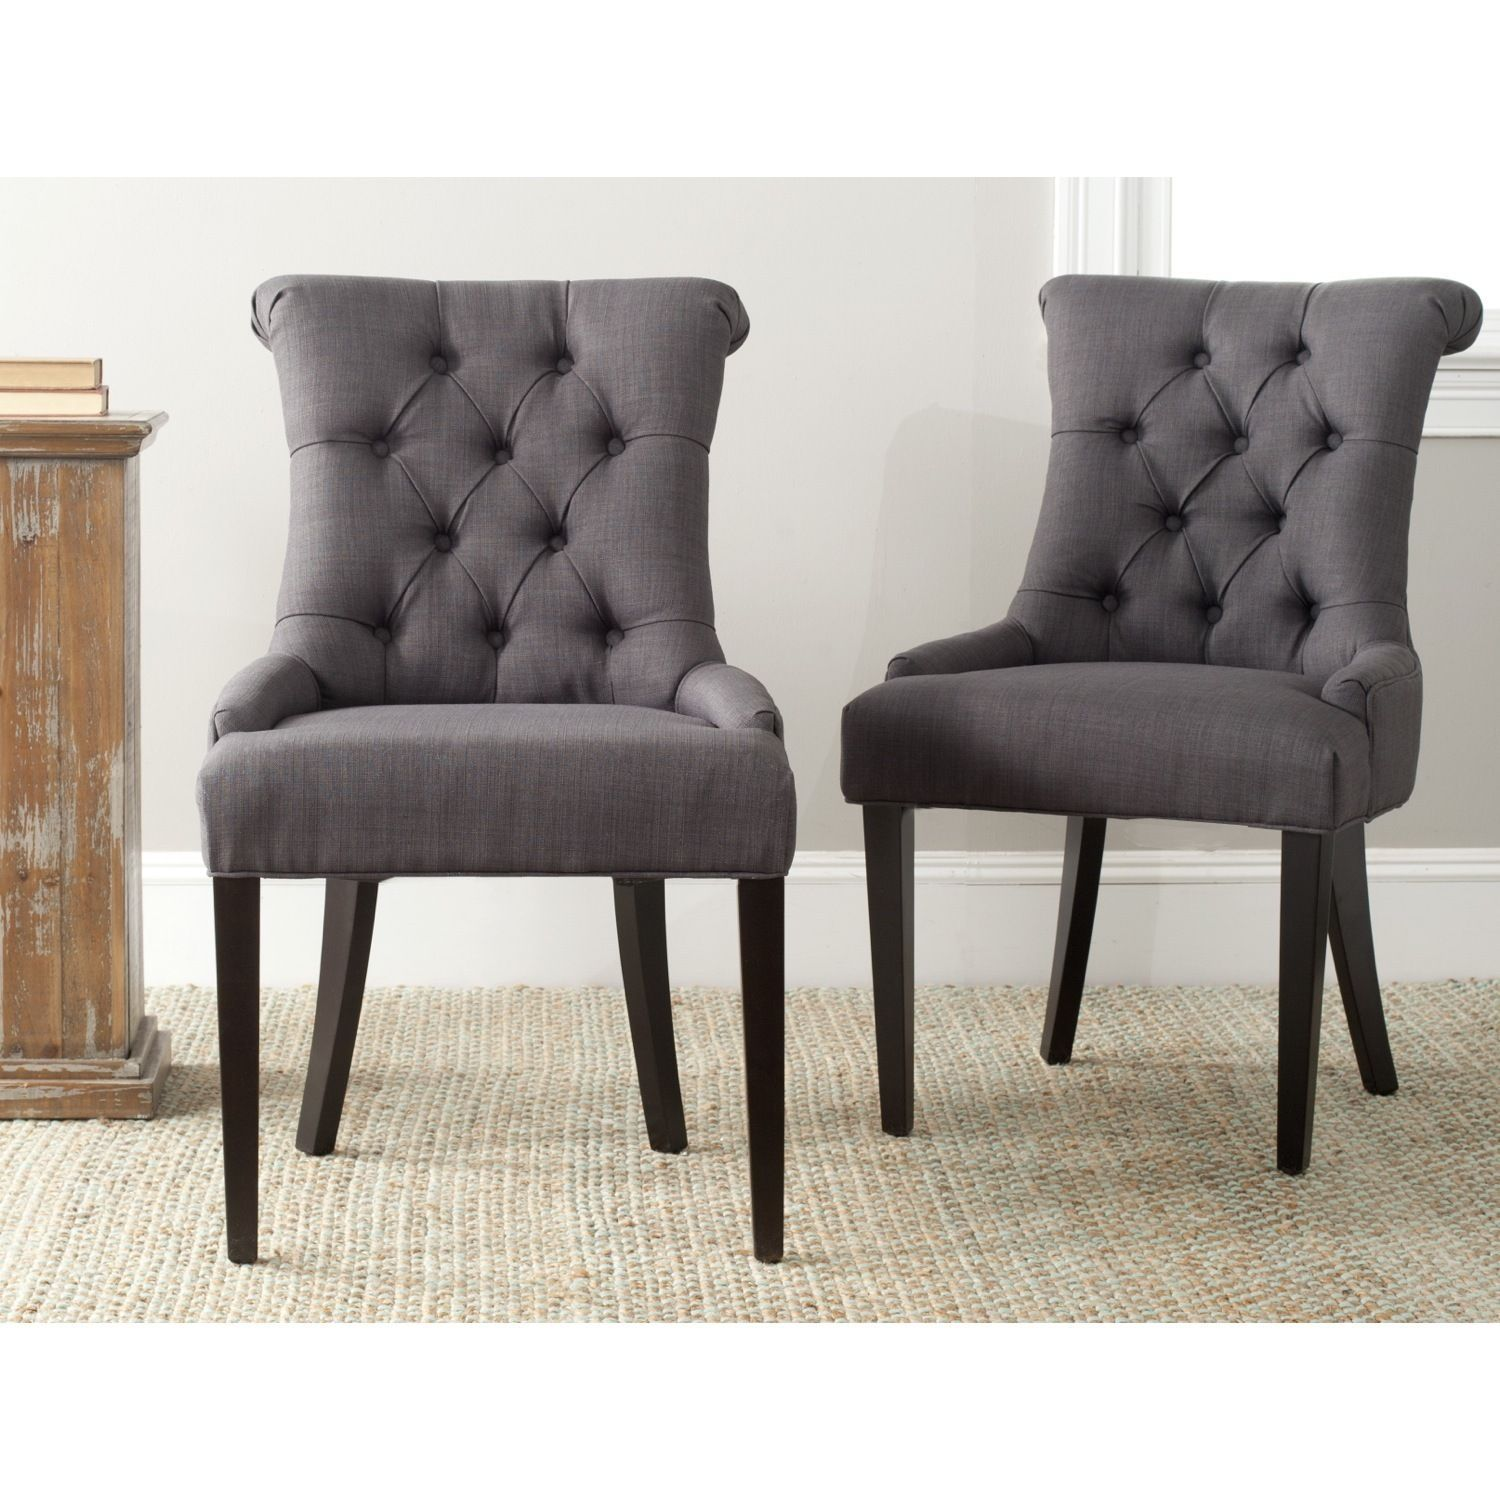 Safavieh En Vogue Dining Bowie Charcoal Grey Side Chairs Set Of 2 Mcr4712d Set2 Linen Gray Dining Chairs Dining Chairs Grey Side Chairs